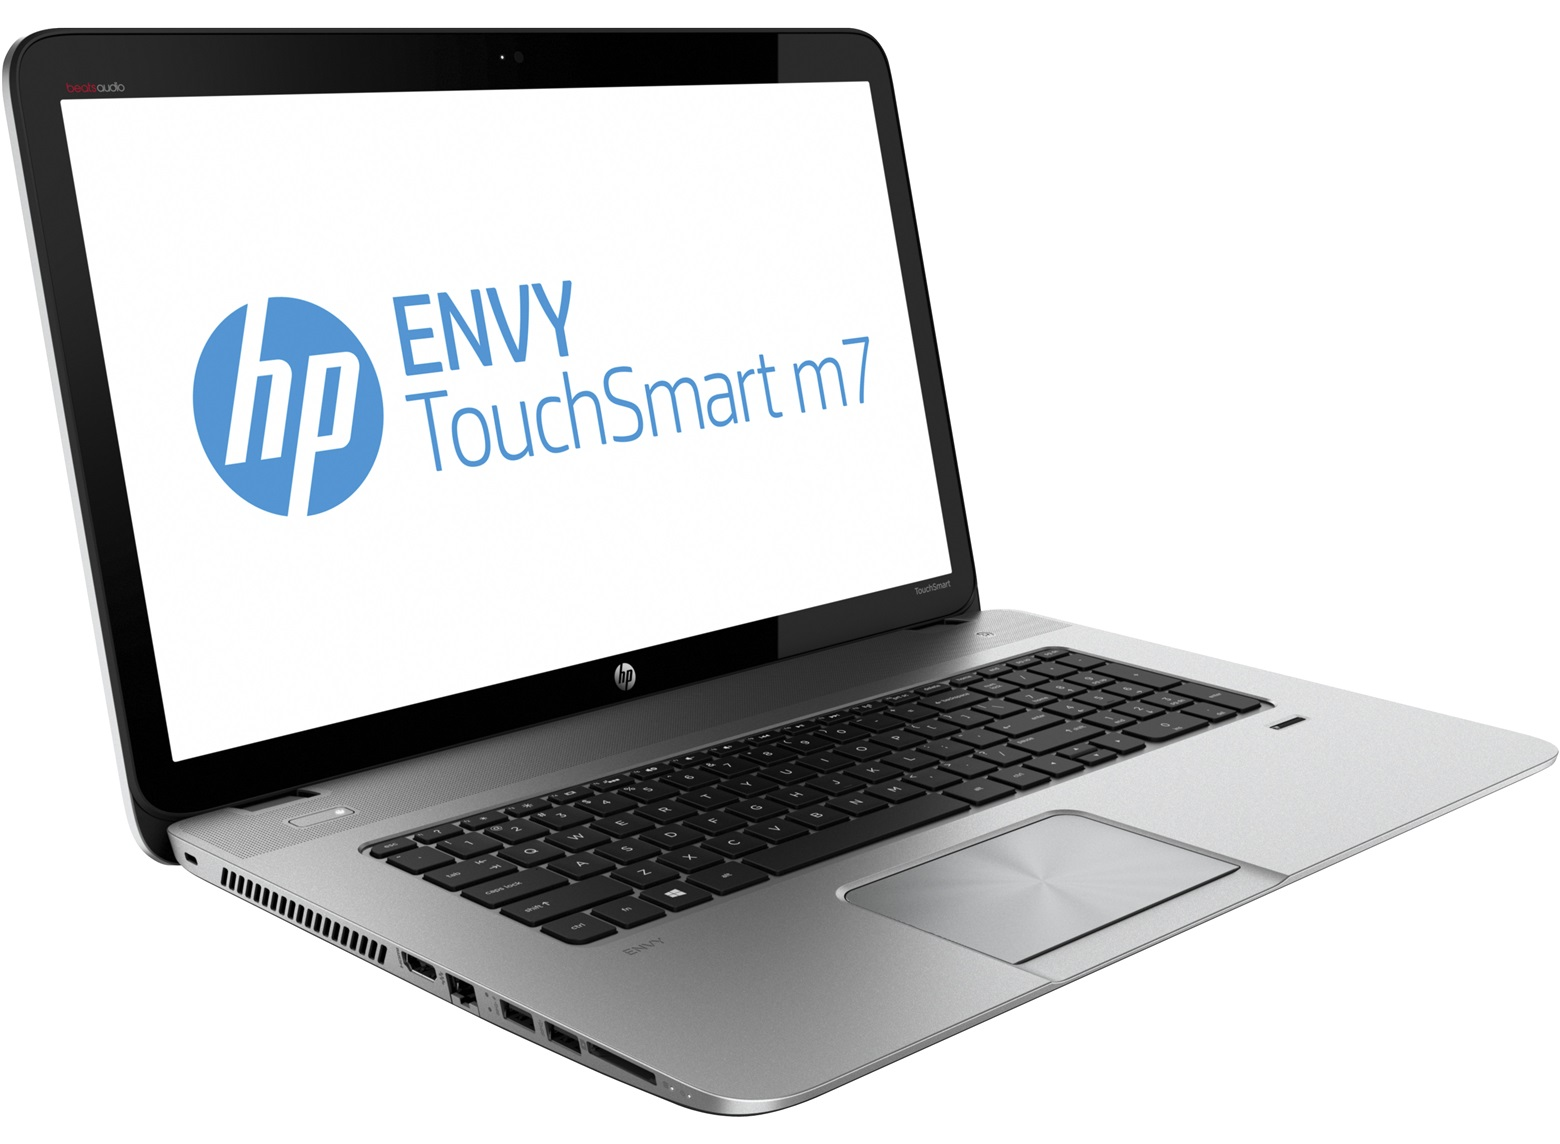 "HP **Factory Refurbished** HP m7-j020dx 17.3"" Notebook - Intel Core i7-4700MQ 2.4GHz 8GB 1TB Win 8"